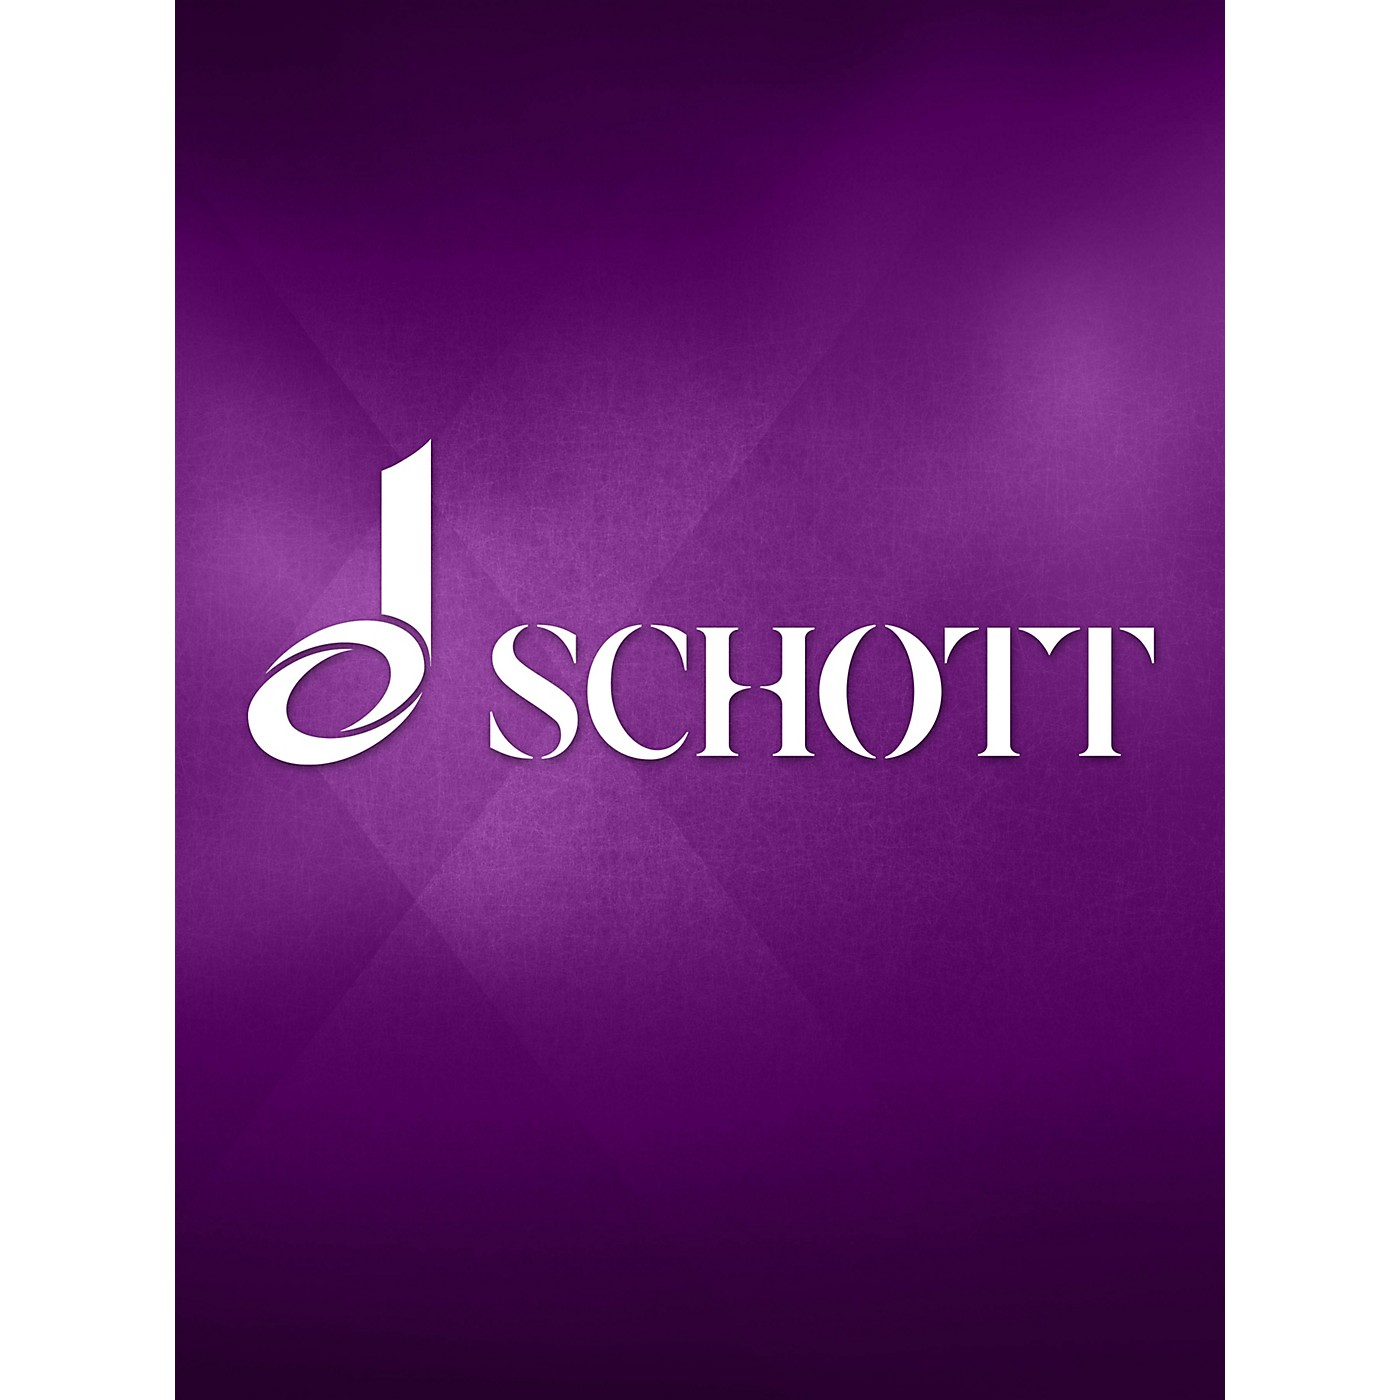 Schott Concerto No. 11 in A Major, Op. 3 (Violin and Piano Reduction) Schott Series thumbnail